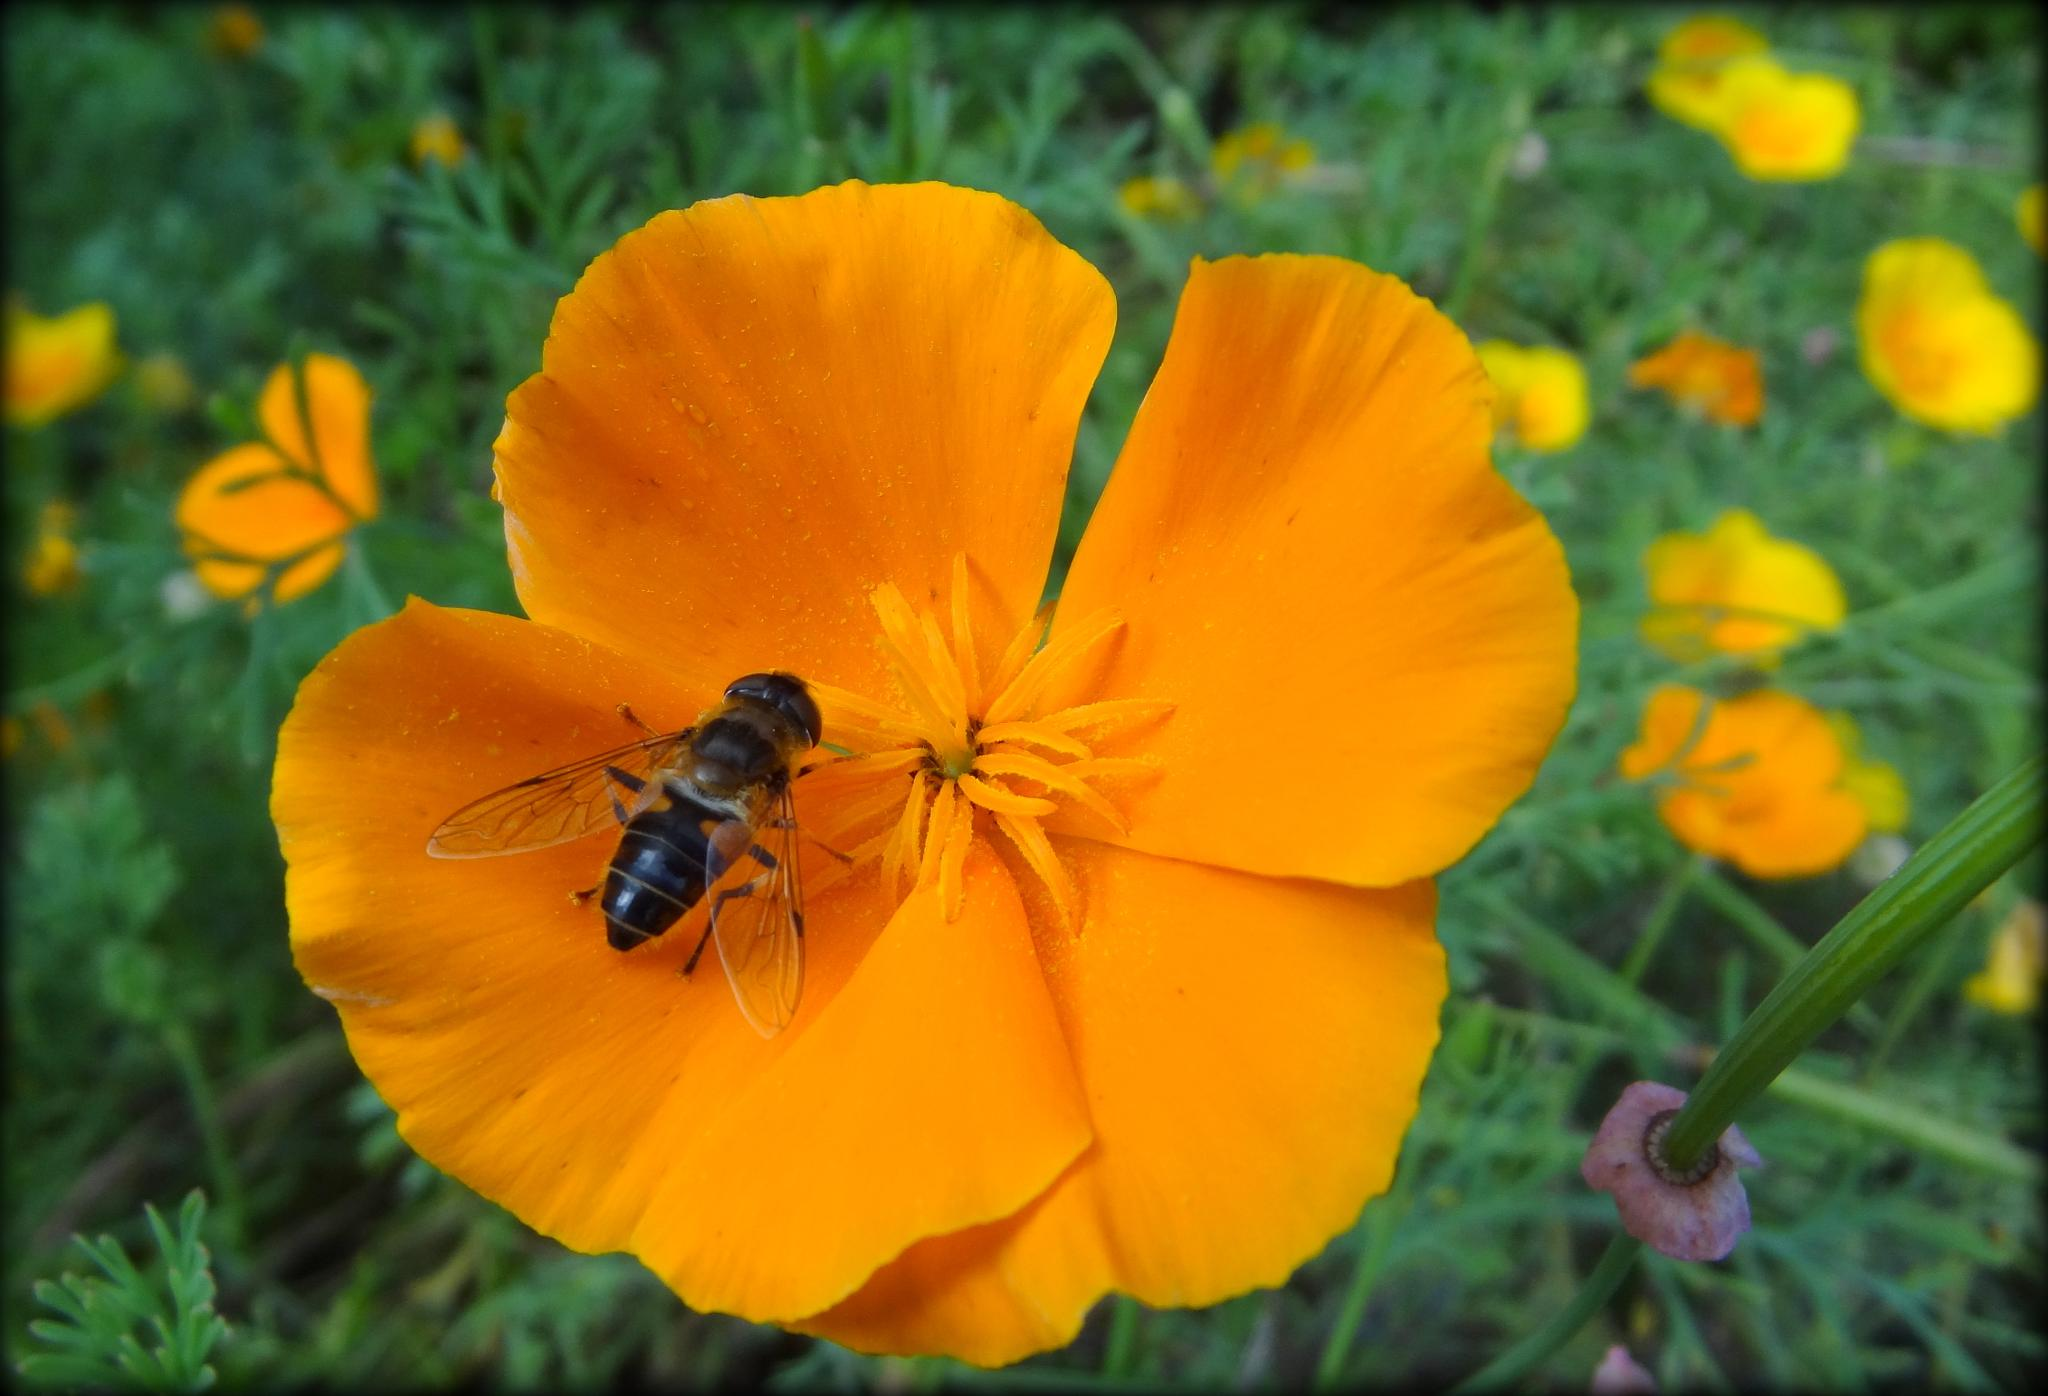 Resting in the California Poppies by jcmunckton